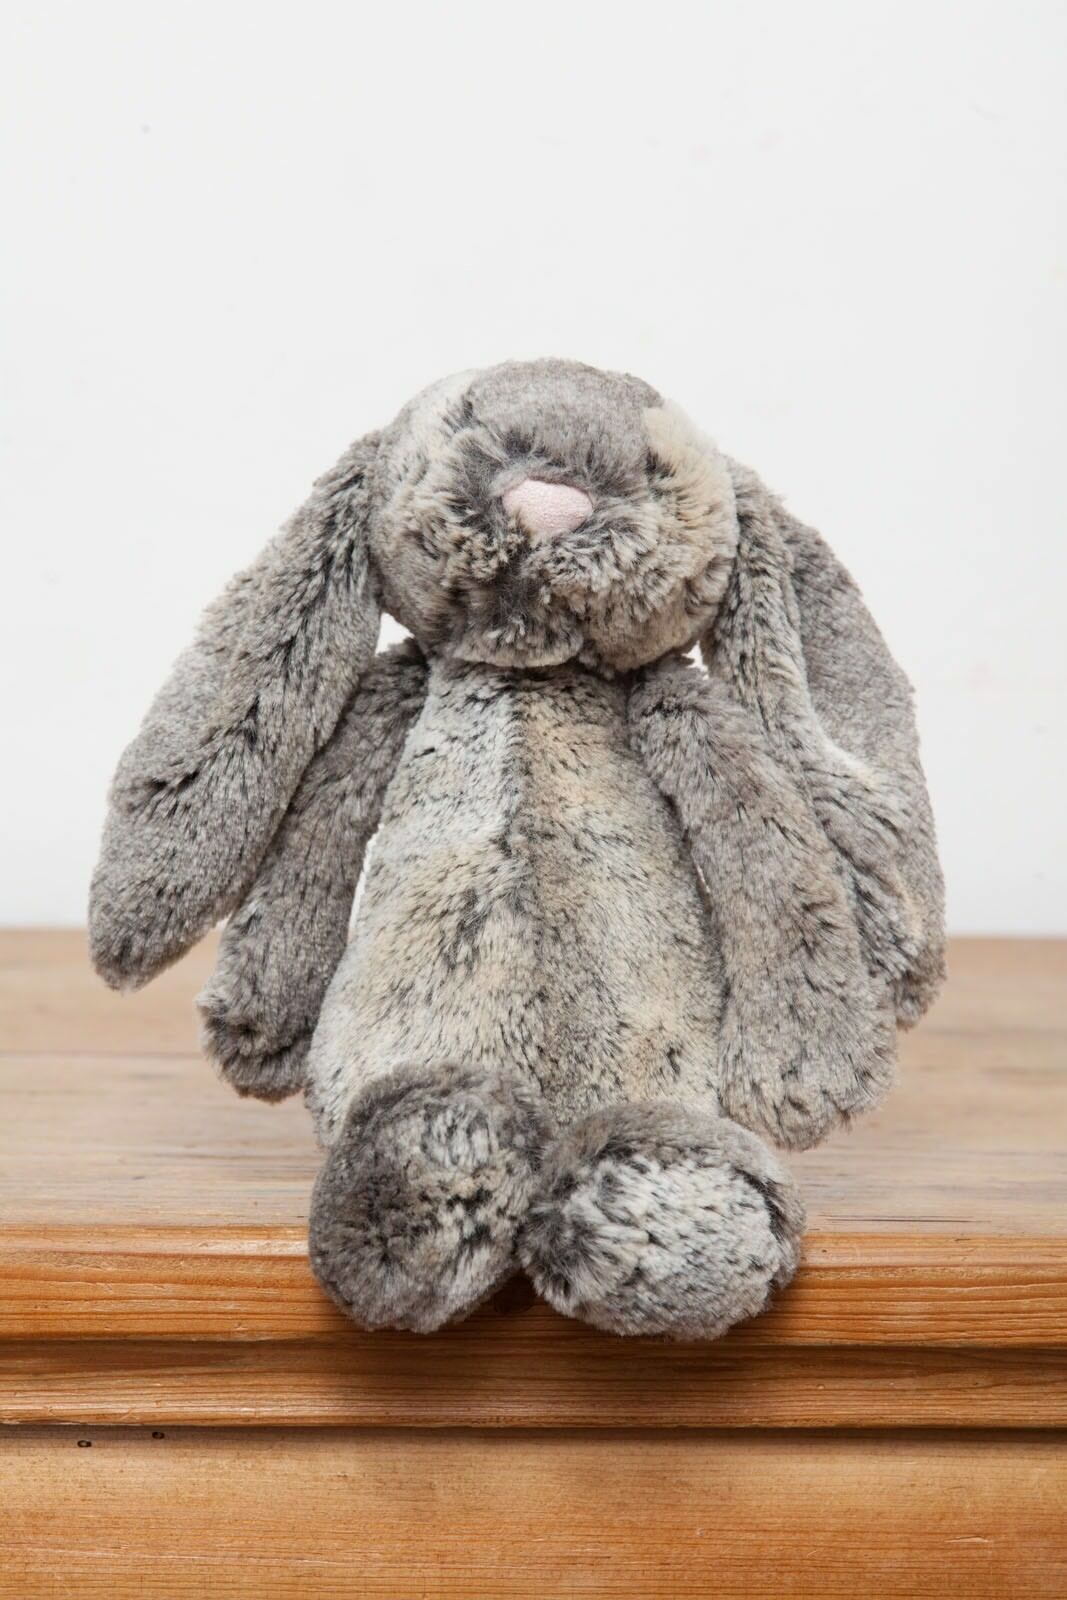 Jellycat Cottontail Bashful Bunny Rabbit - Special Edition Size